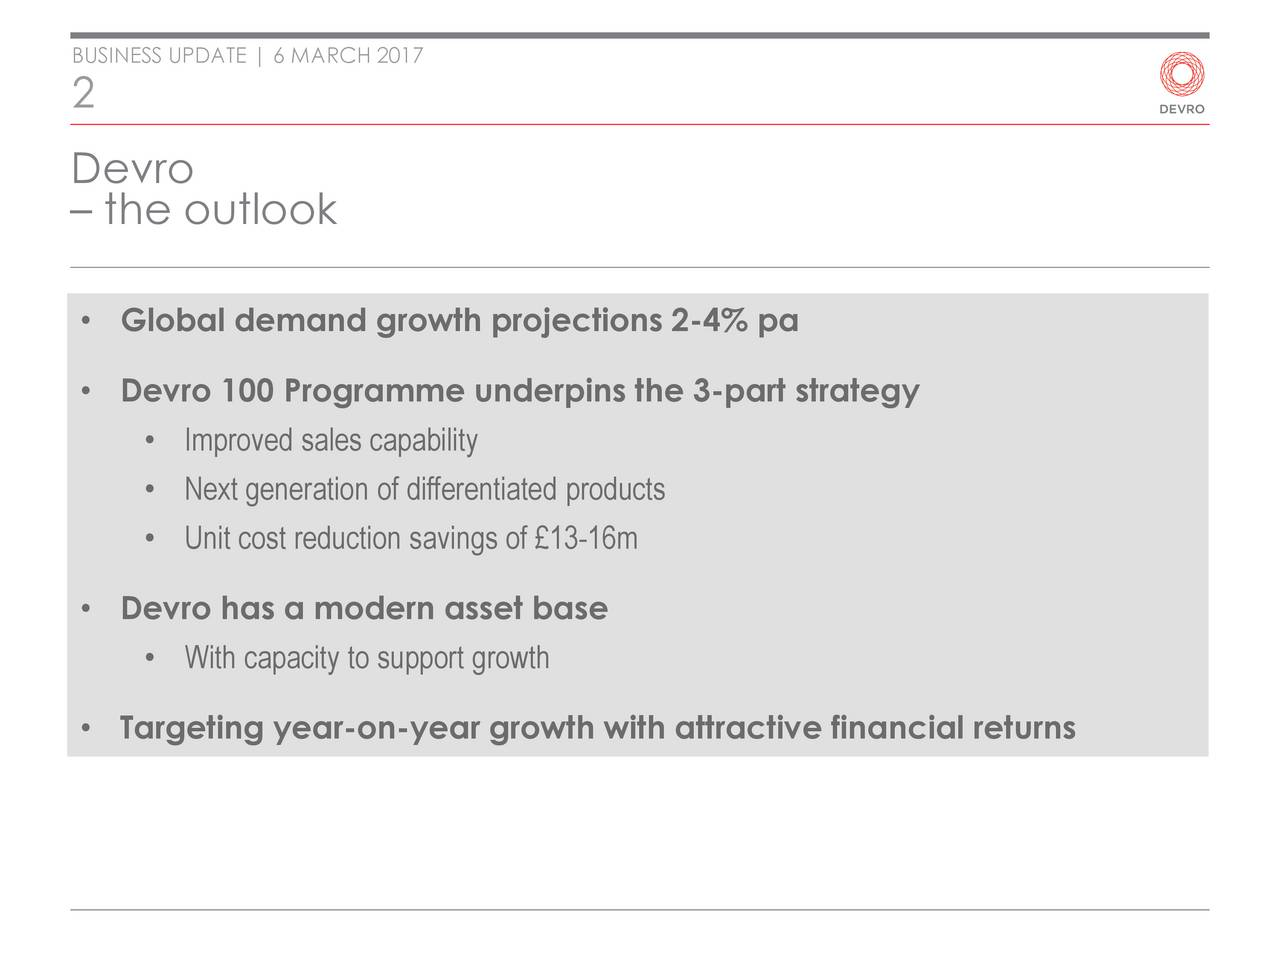 2 Devro the outlook Global demand growth projections 2-4% pa Devro 100 Programme underpins the 3-part strategy Improved sales capability Next generation of differentiated products Unit cost reduction savings of 13-16m Devro has a modern asset base With capacity to support growth Targeting year-on-year growth with attractive financial returns